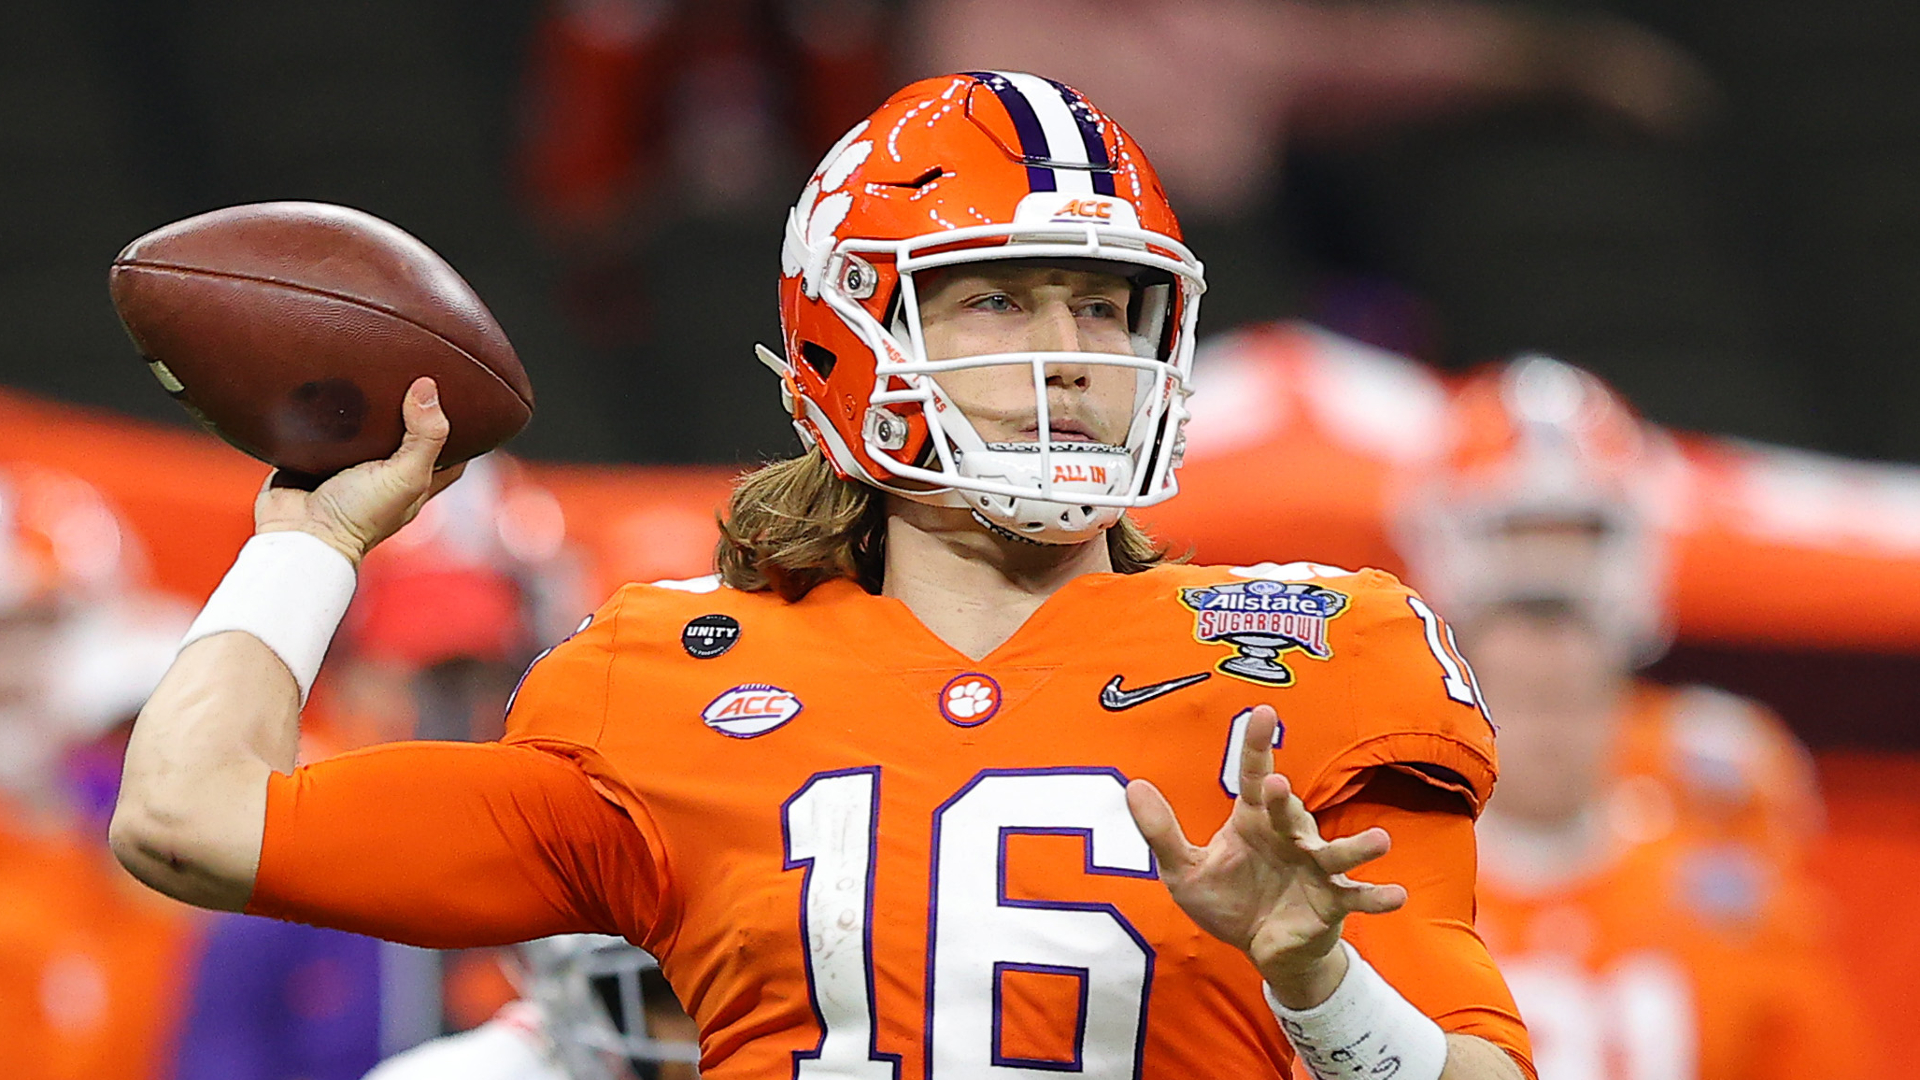 Trevor Lawrence pro day takeaways: Clemson QB throws down in NFL draft workout, Jaguars show him all the love